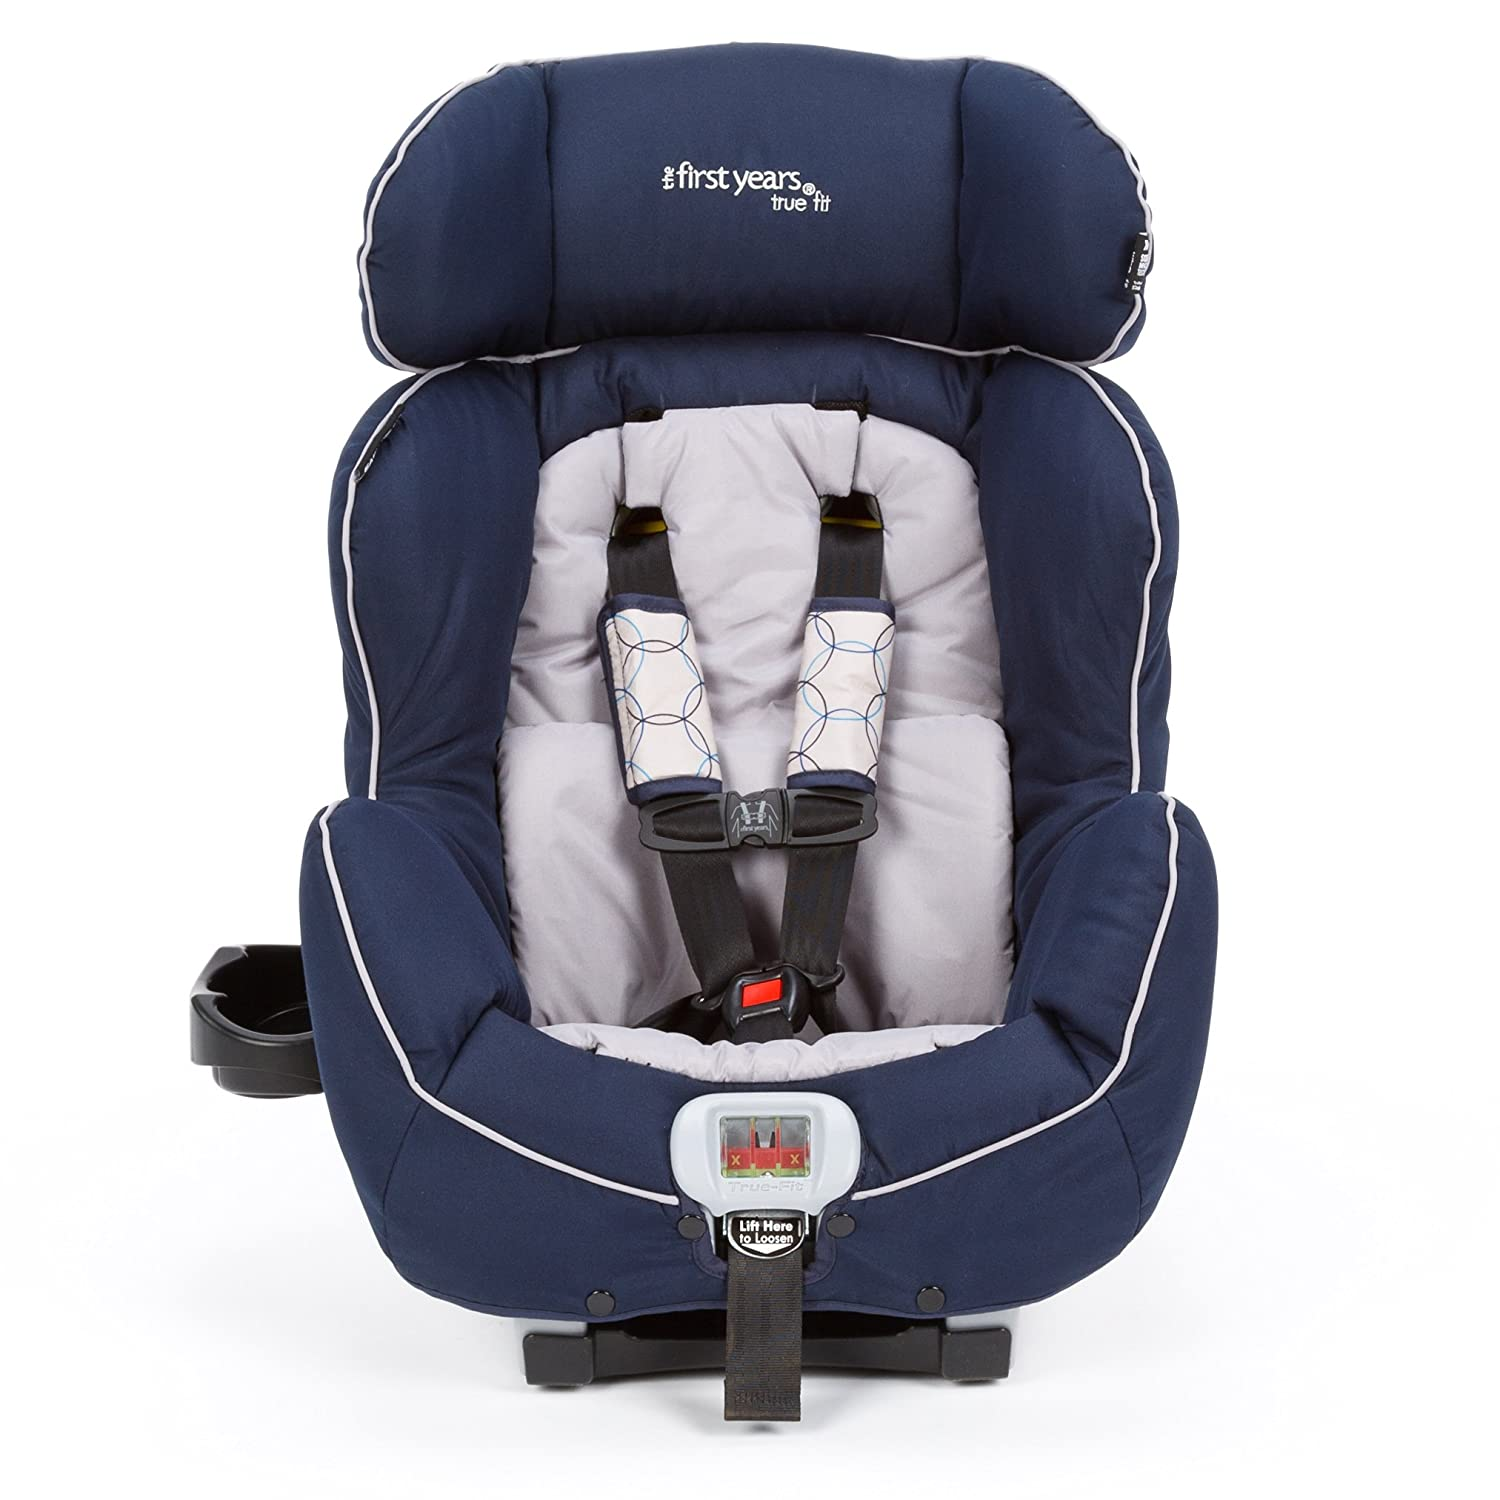 The First Years True Fit Convertible C650 Car Seat Spiro Amazonca Baby